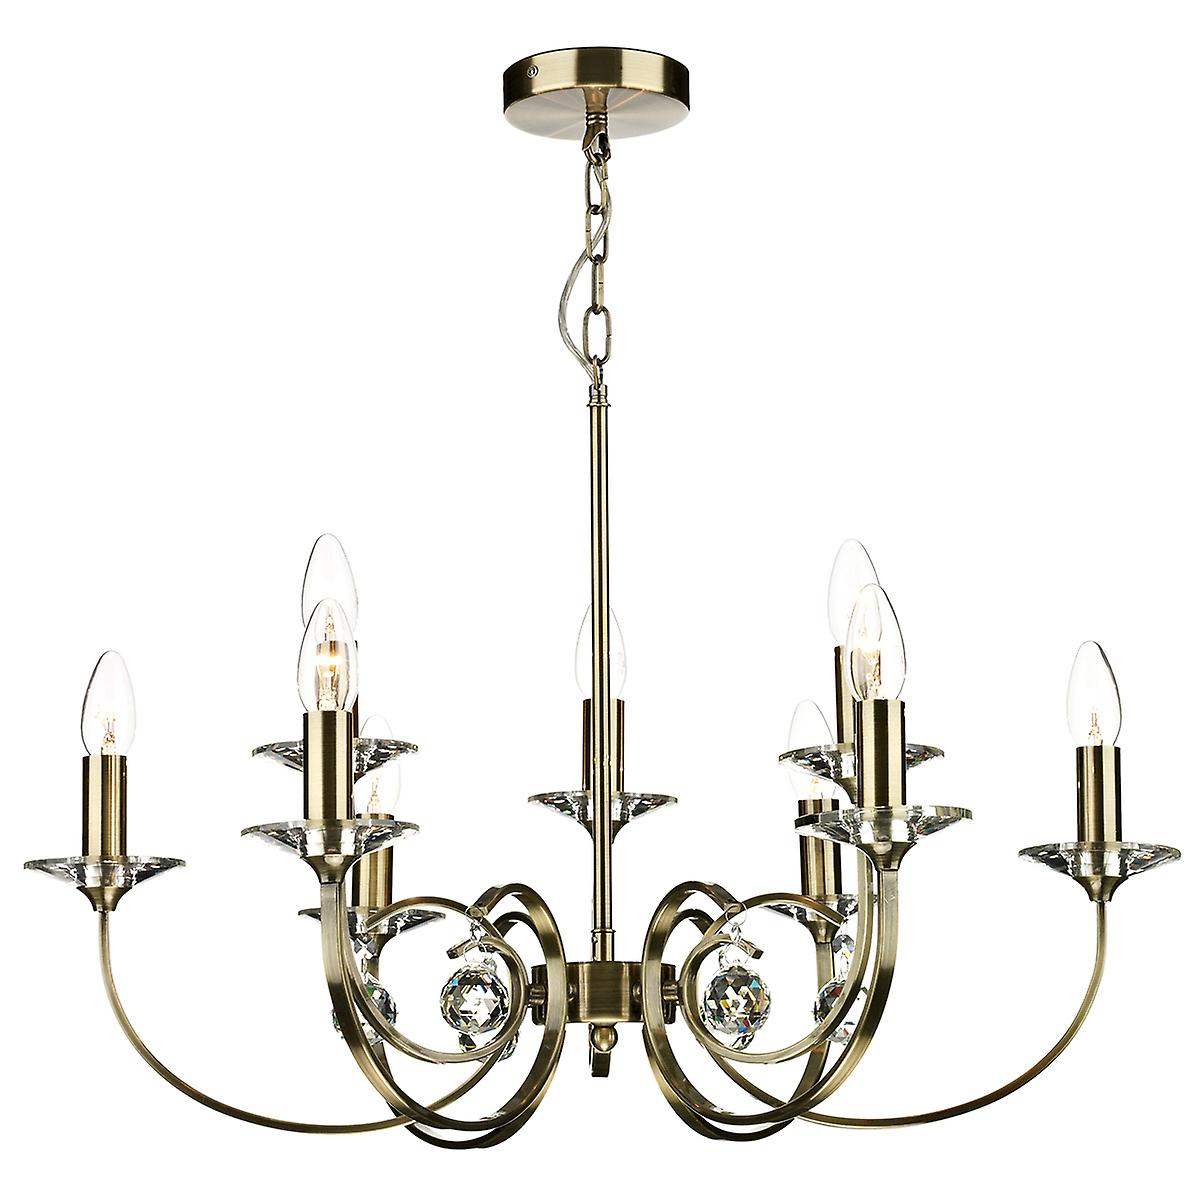 Dar ALL1375 Allegra 9 Arm Traditional Ceiling Pendant With Crystal Sconces